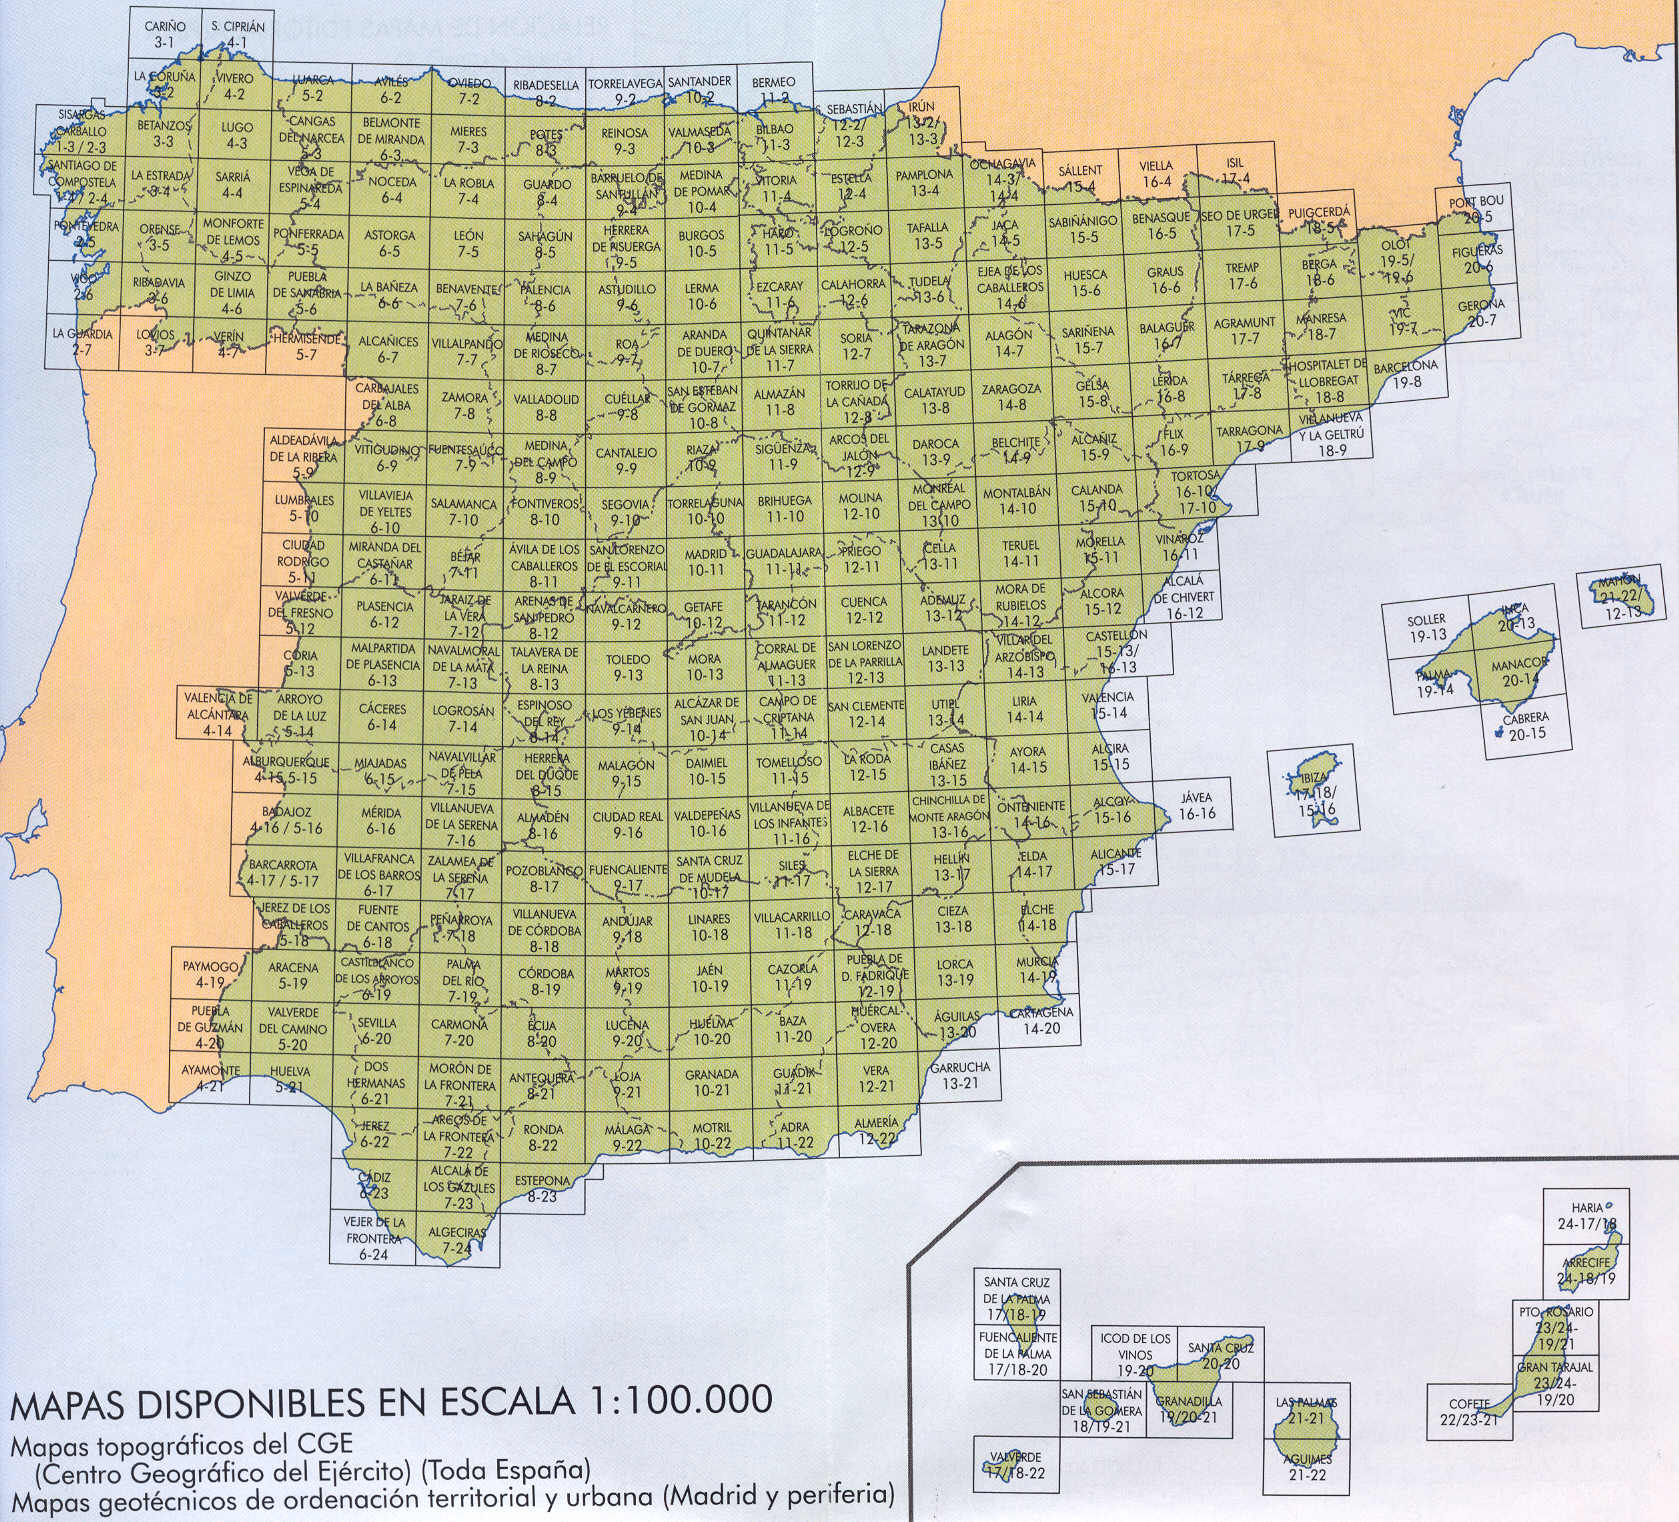 Spains Population Topographical Map Spain Mappery - Map of spain